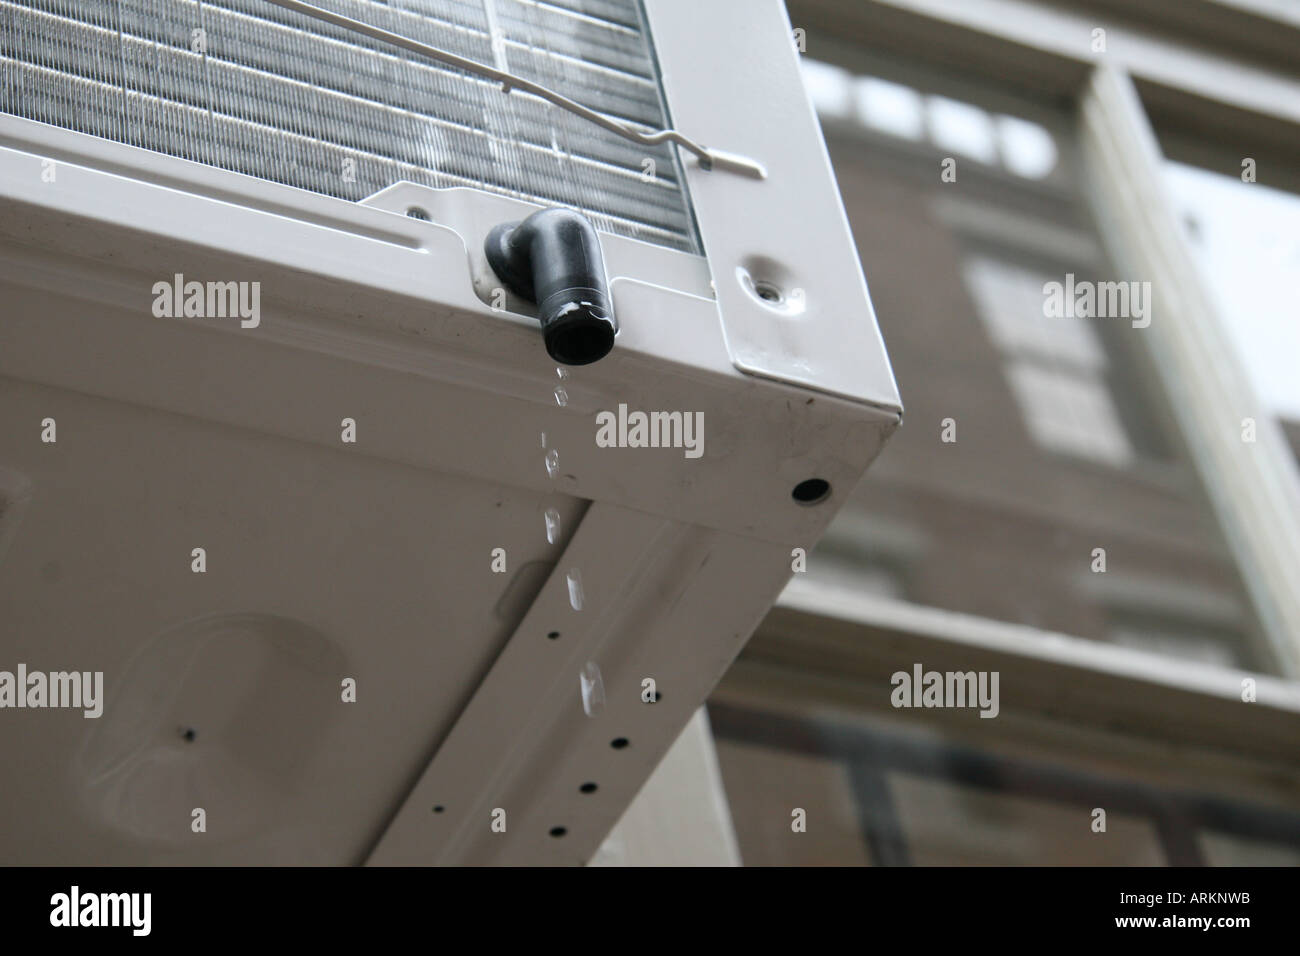 Air Conditioner Dripping Water Stock Photo 9188186 Alamy